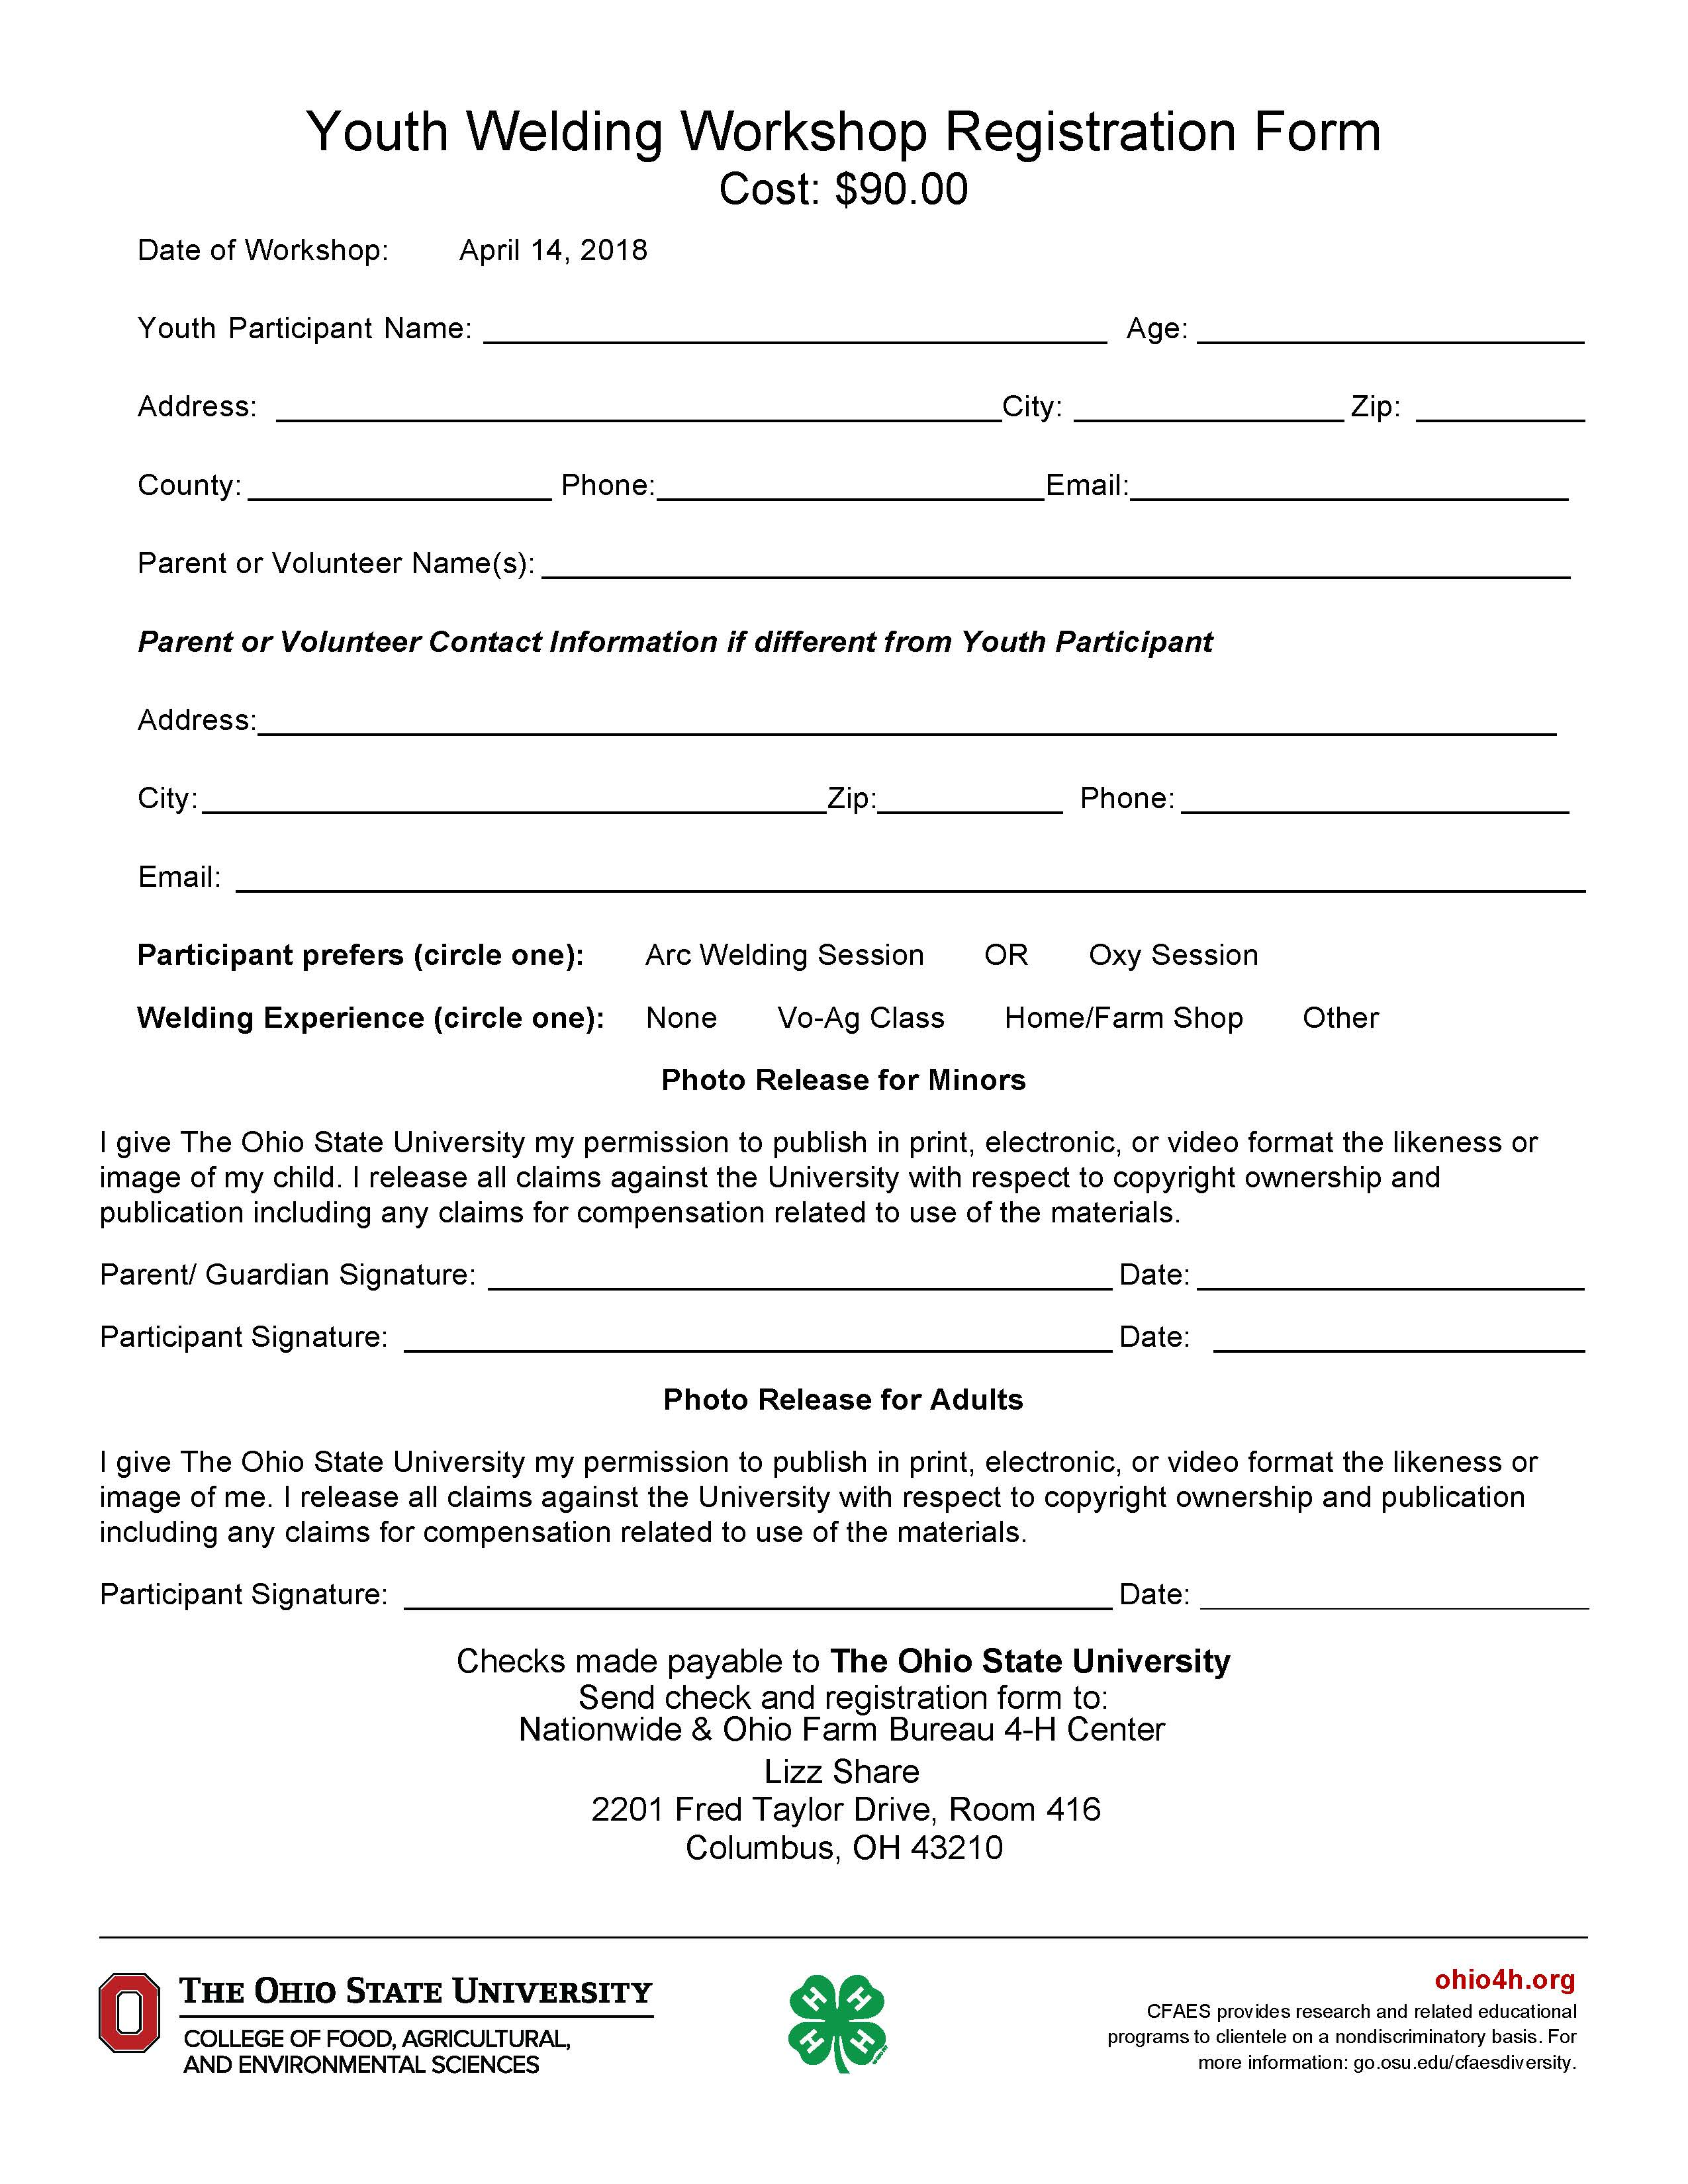 2018 youth welding workshop knox county 4 h registration for this workshop is march 30 and the cost is 90 for more information and the registration form please refer to the flyer below or by altavistaventures Choice Image